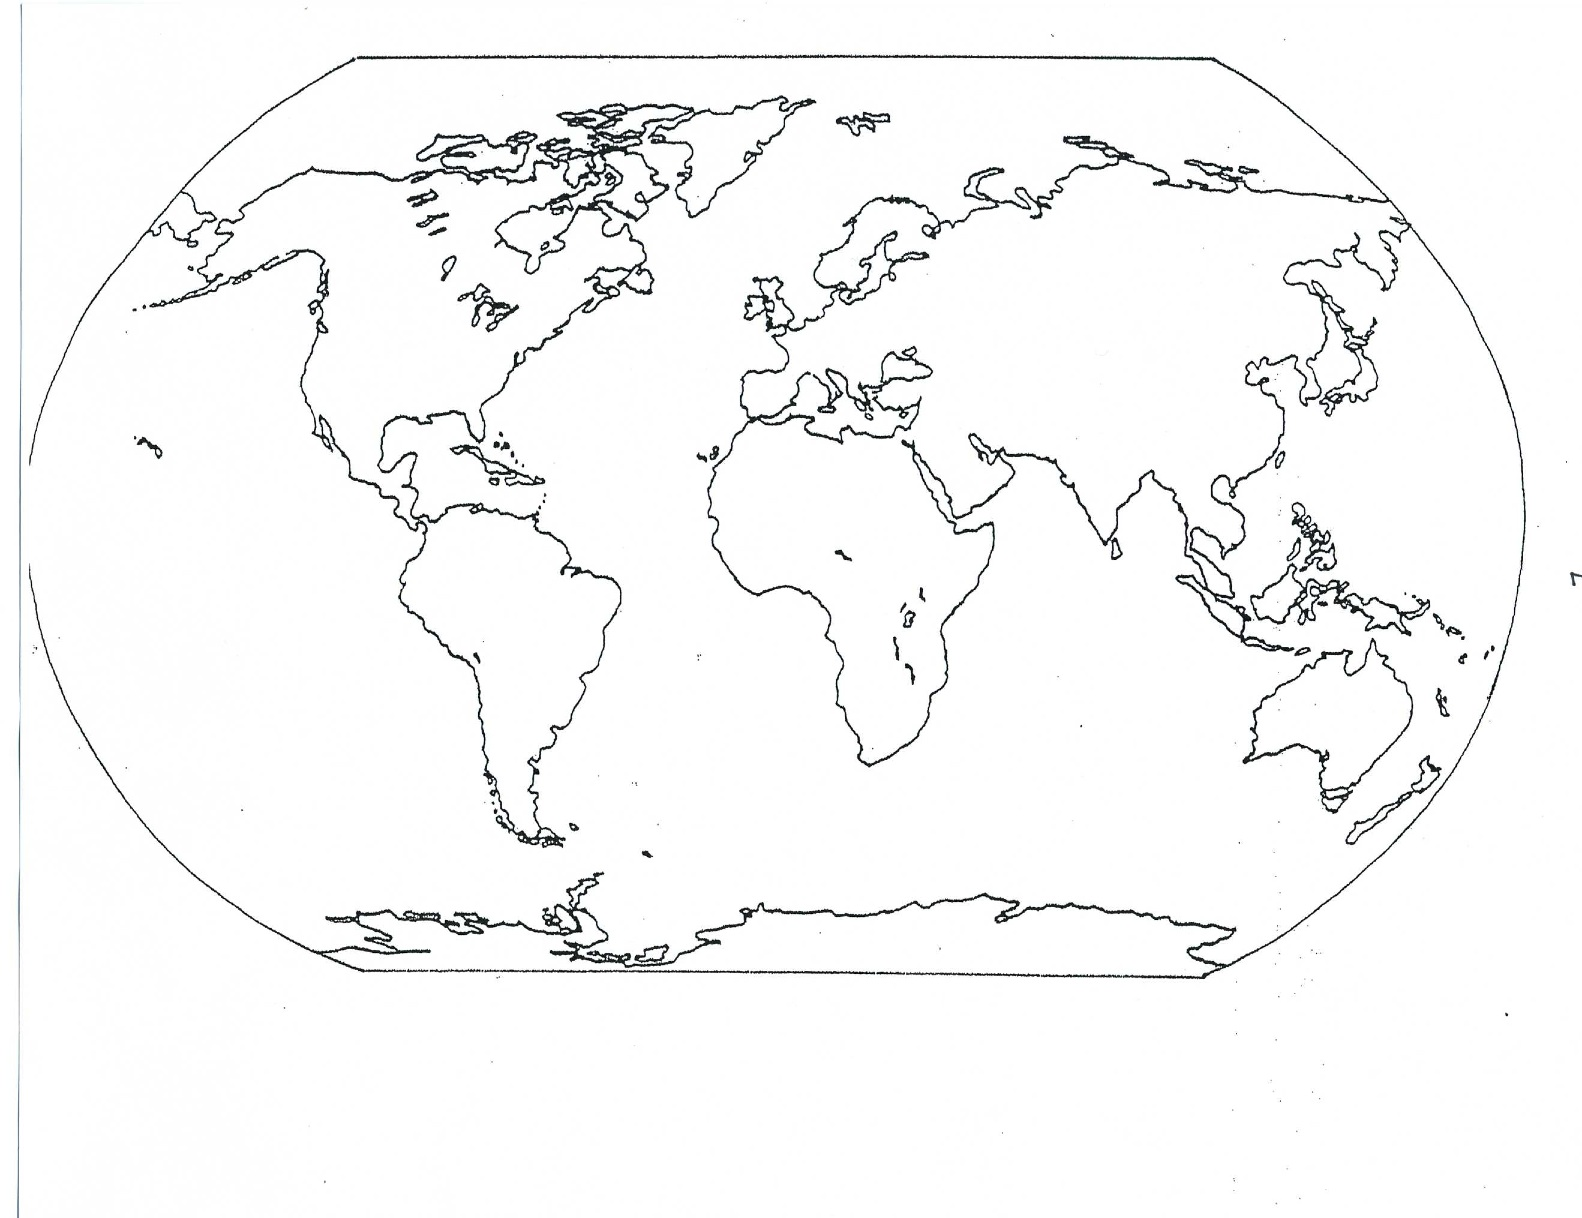 1582x1218 Blank Seven Continents Map Mr.guerrieros Blog Blank And Filled